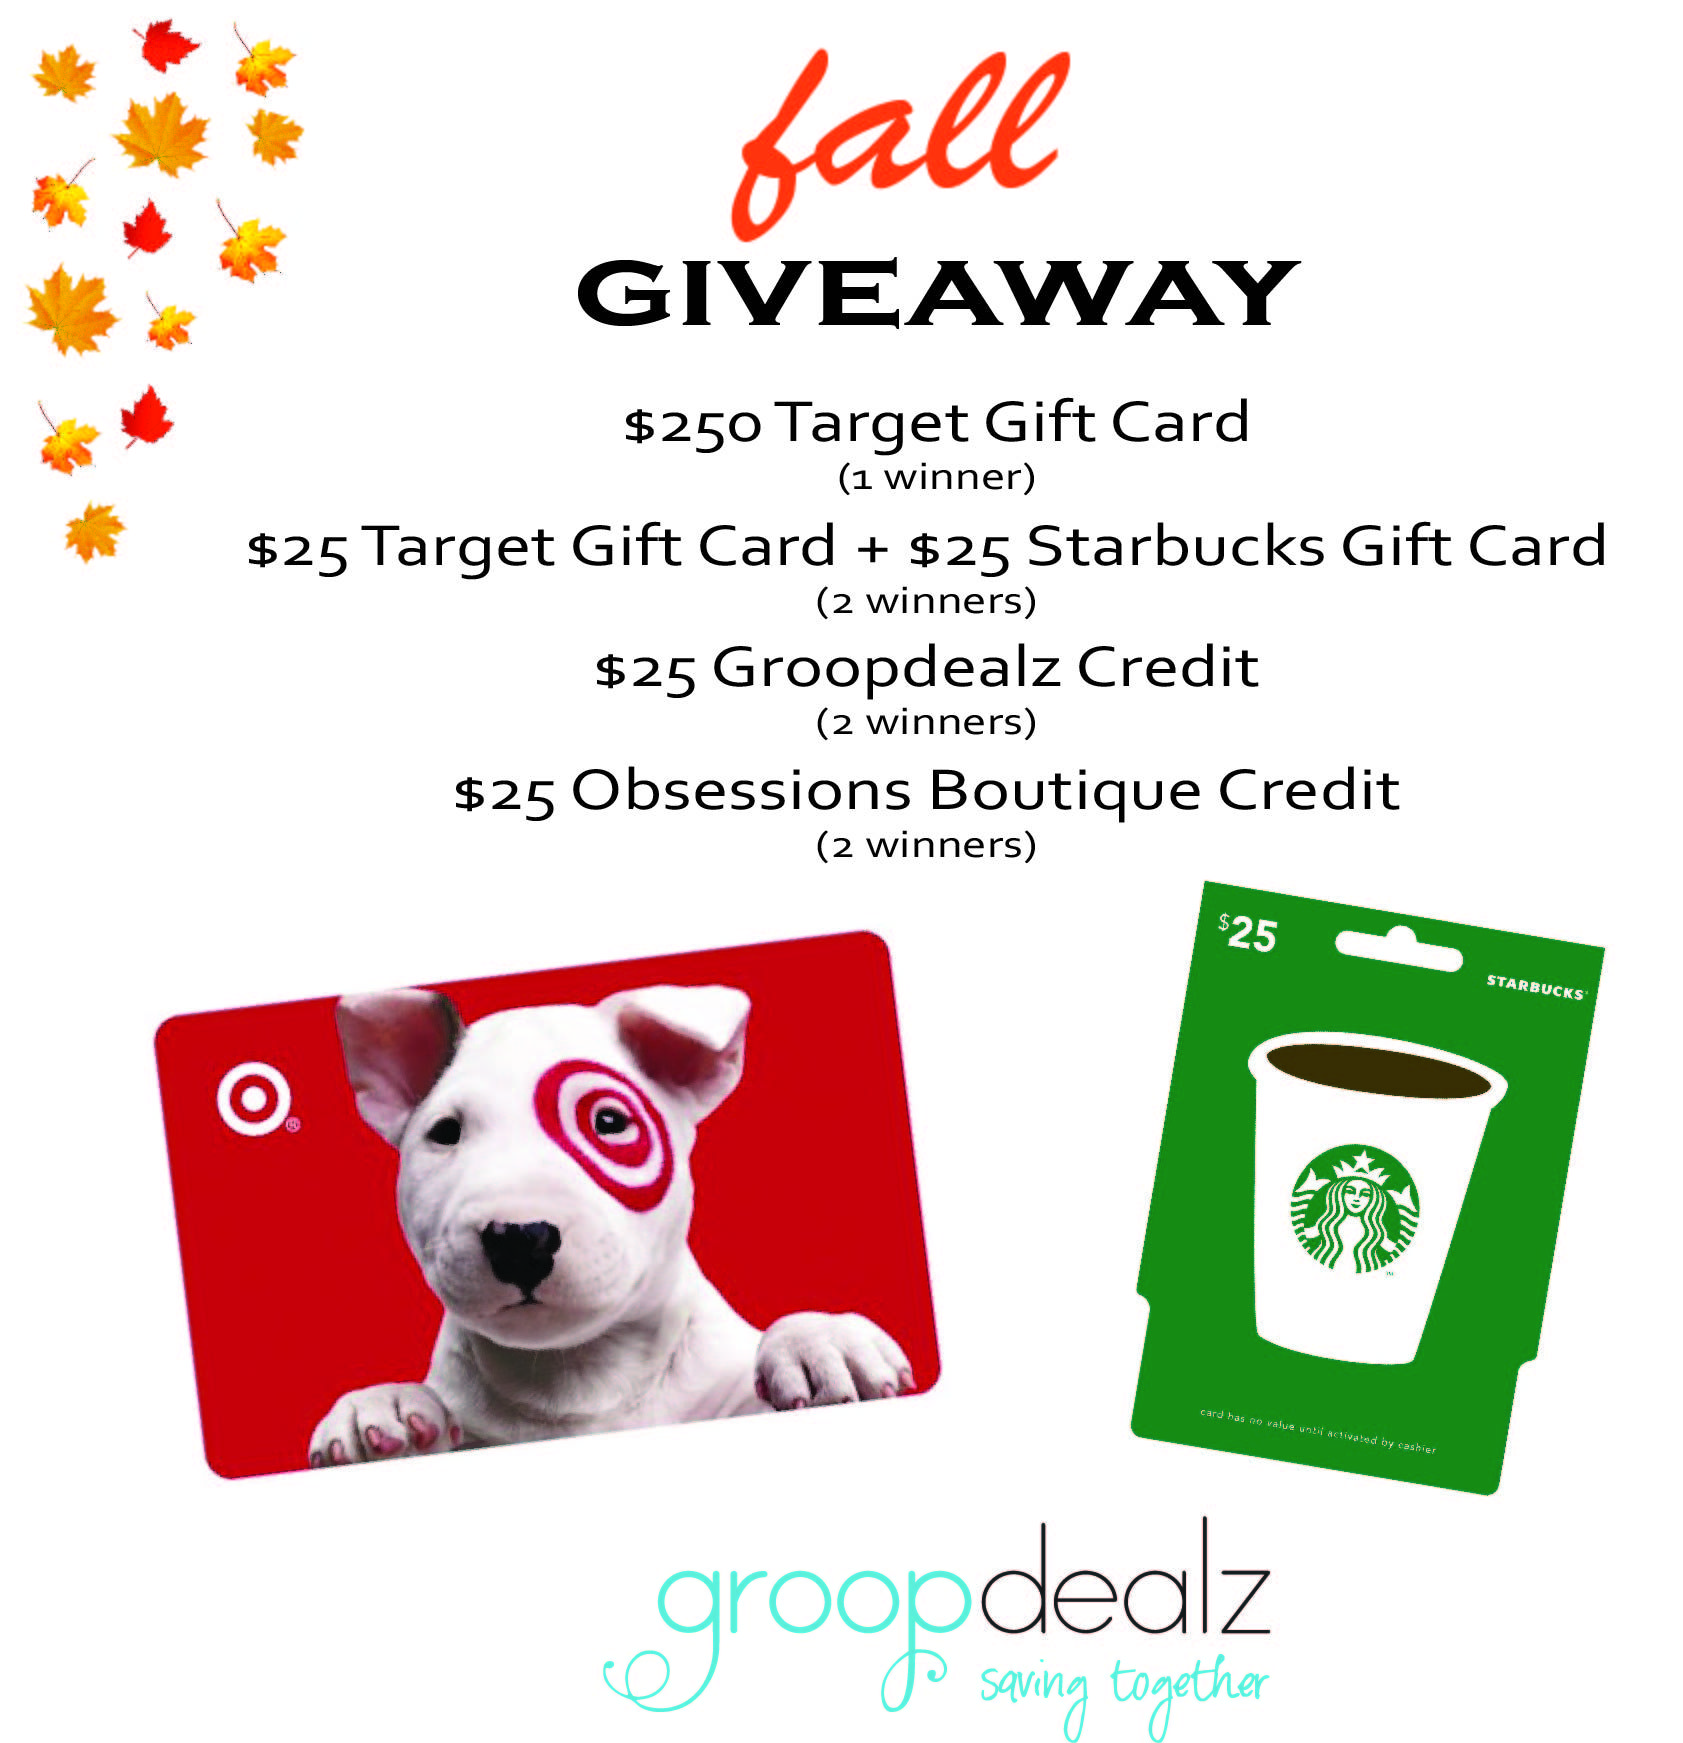 Enter to win a 250 target gift card or 6 other prizes